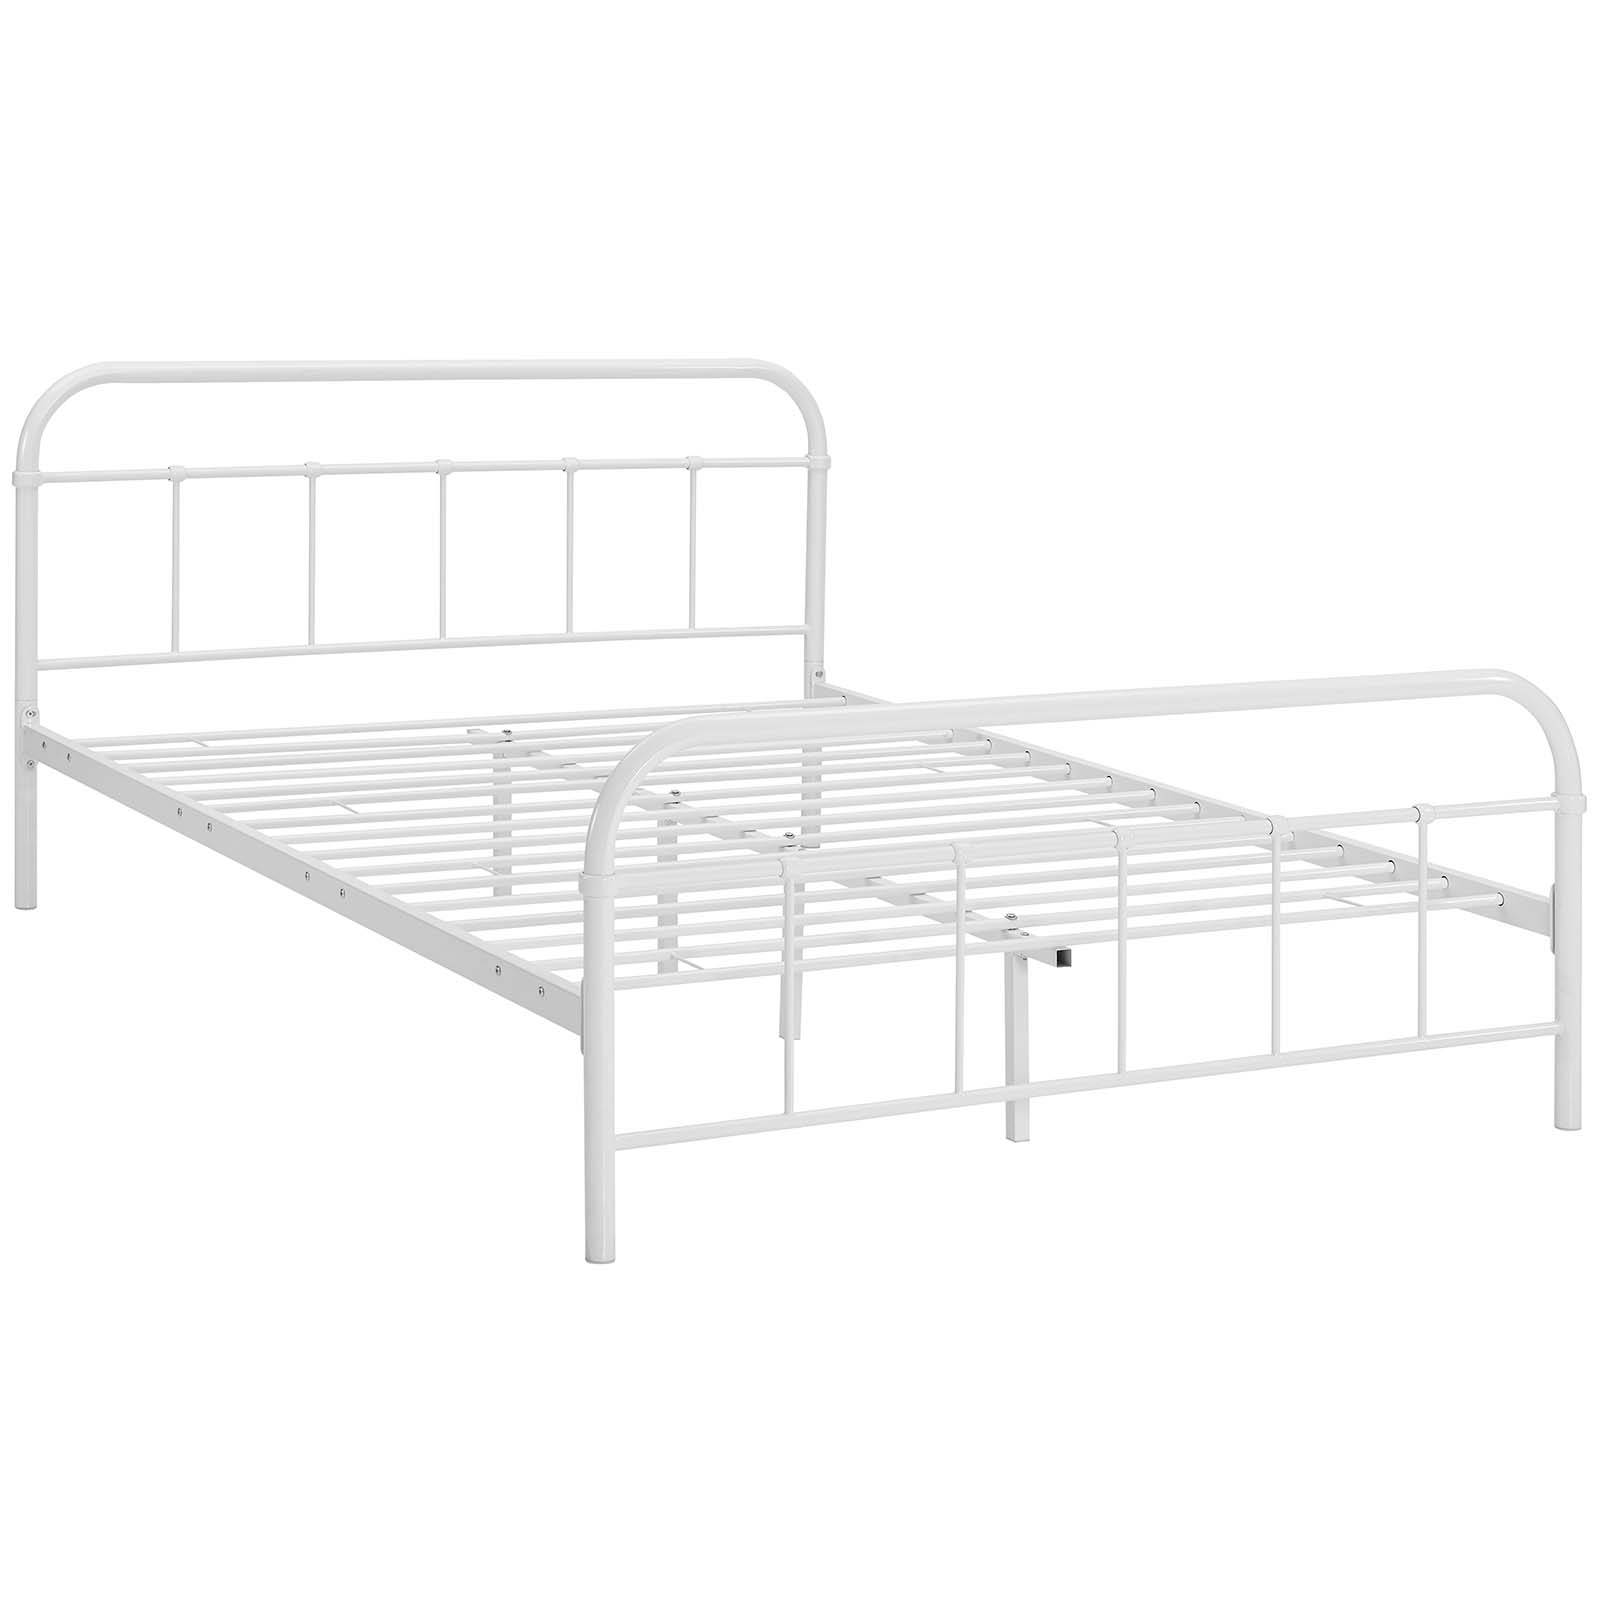 Full Stainless Steel Bed Frame Click To Enlarge